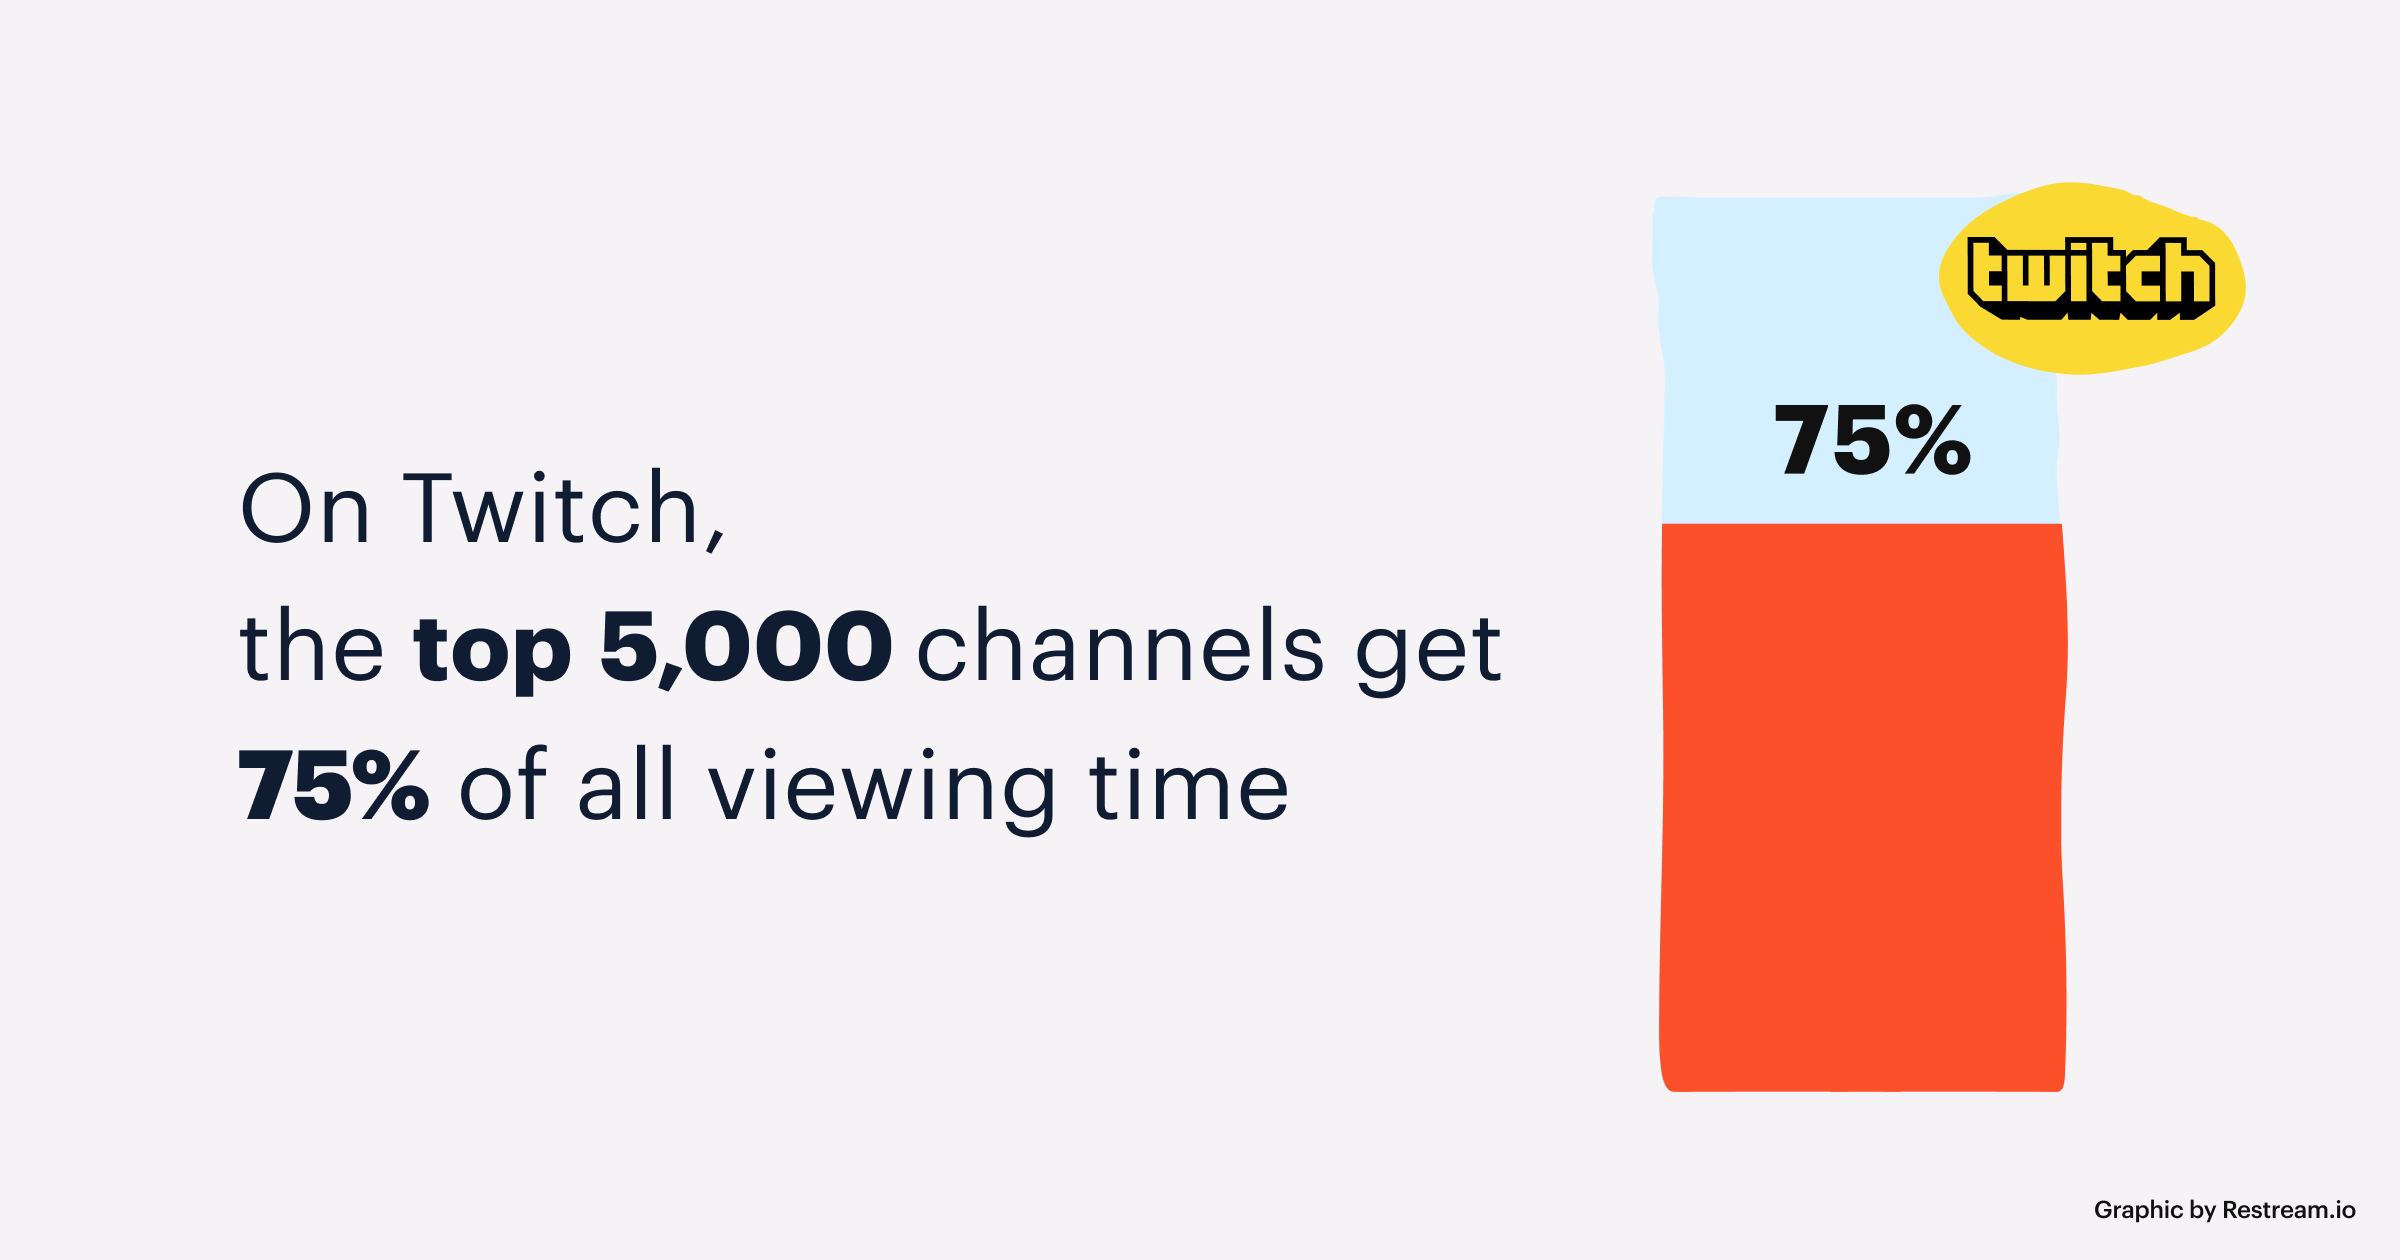 On Twitch, the top 5,000 channels get 75% of all viewing time